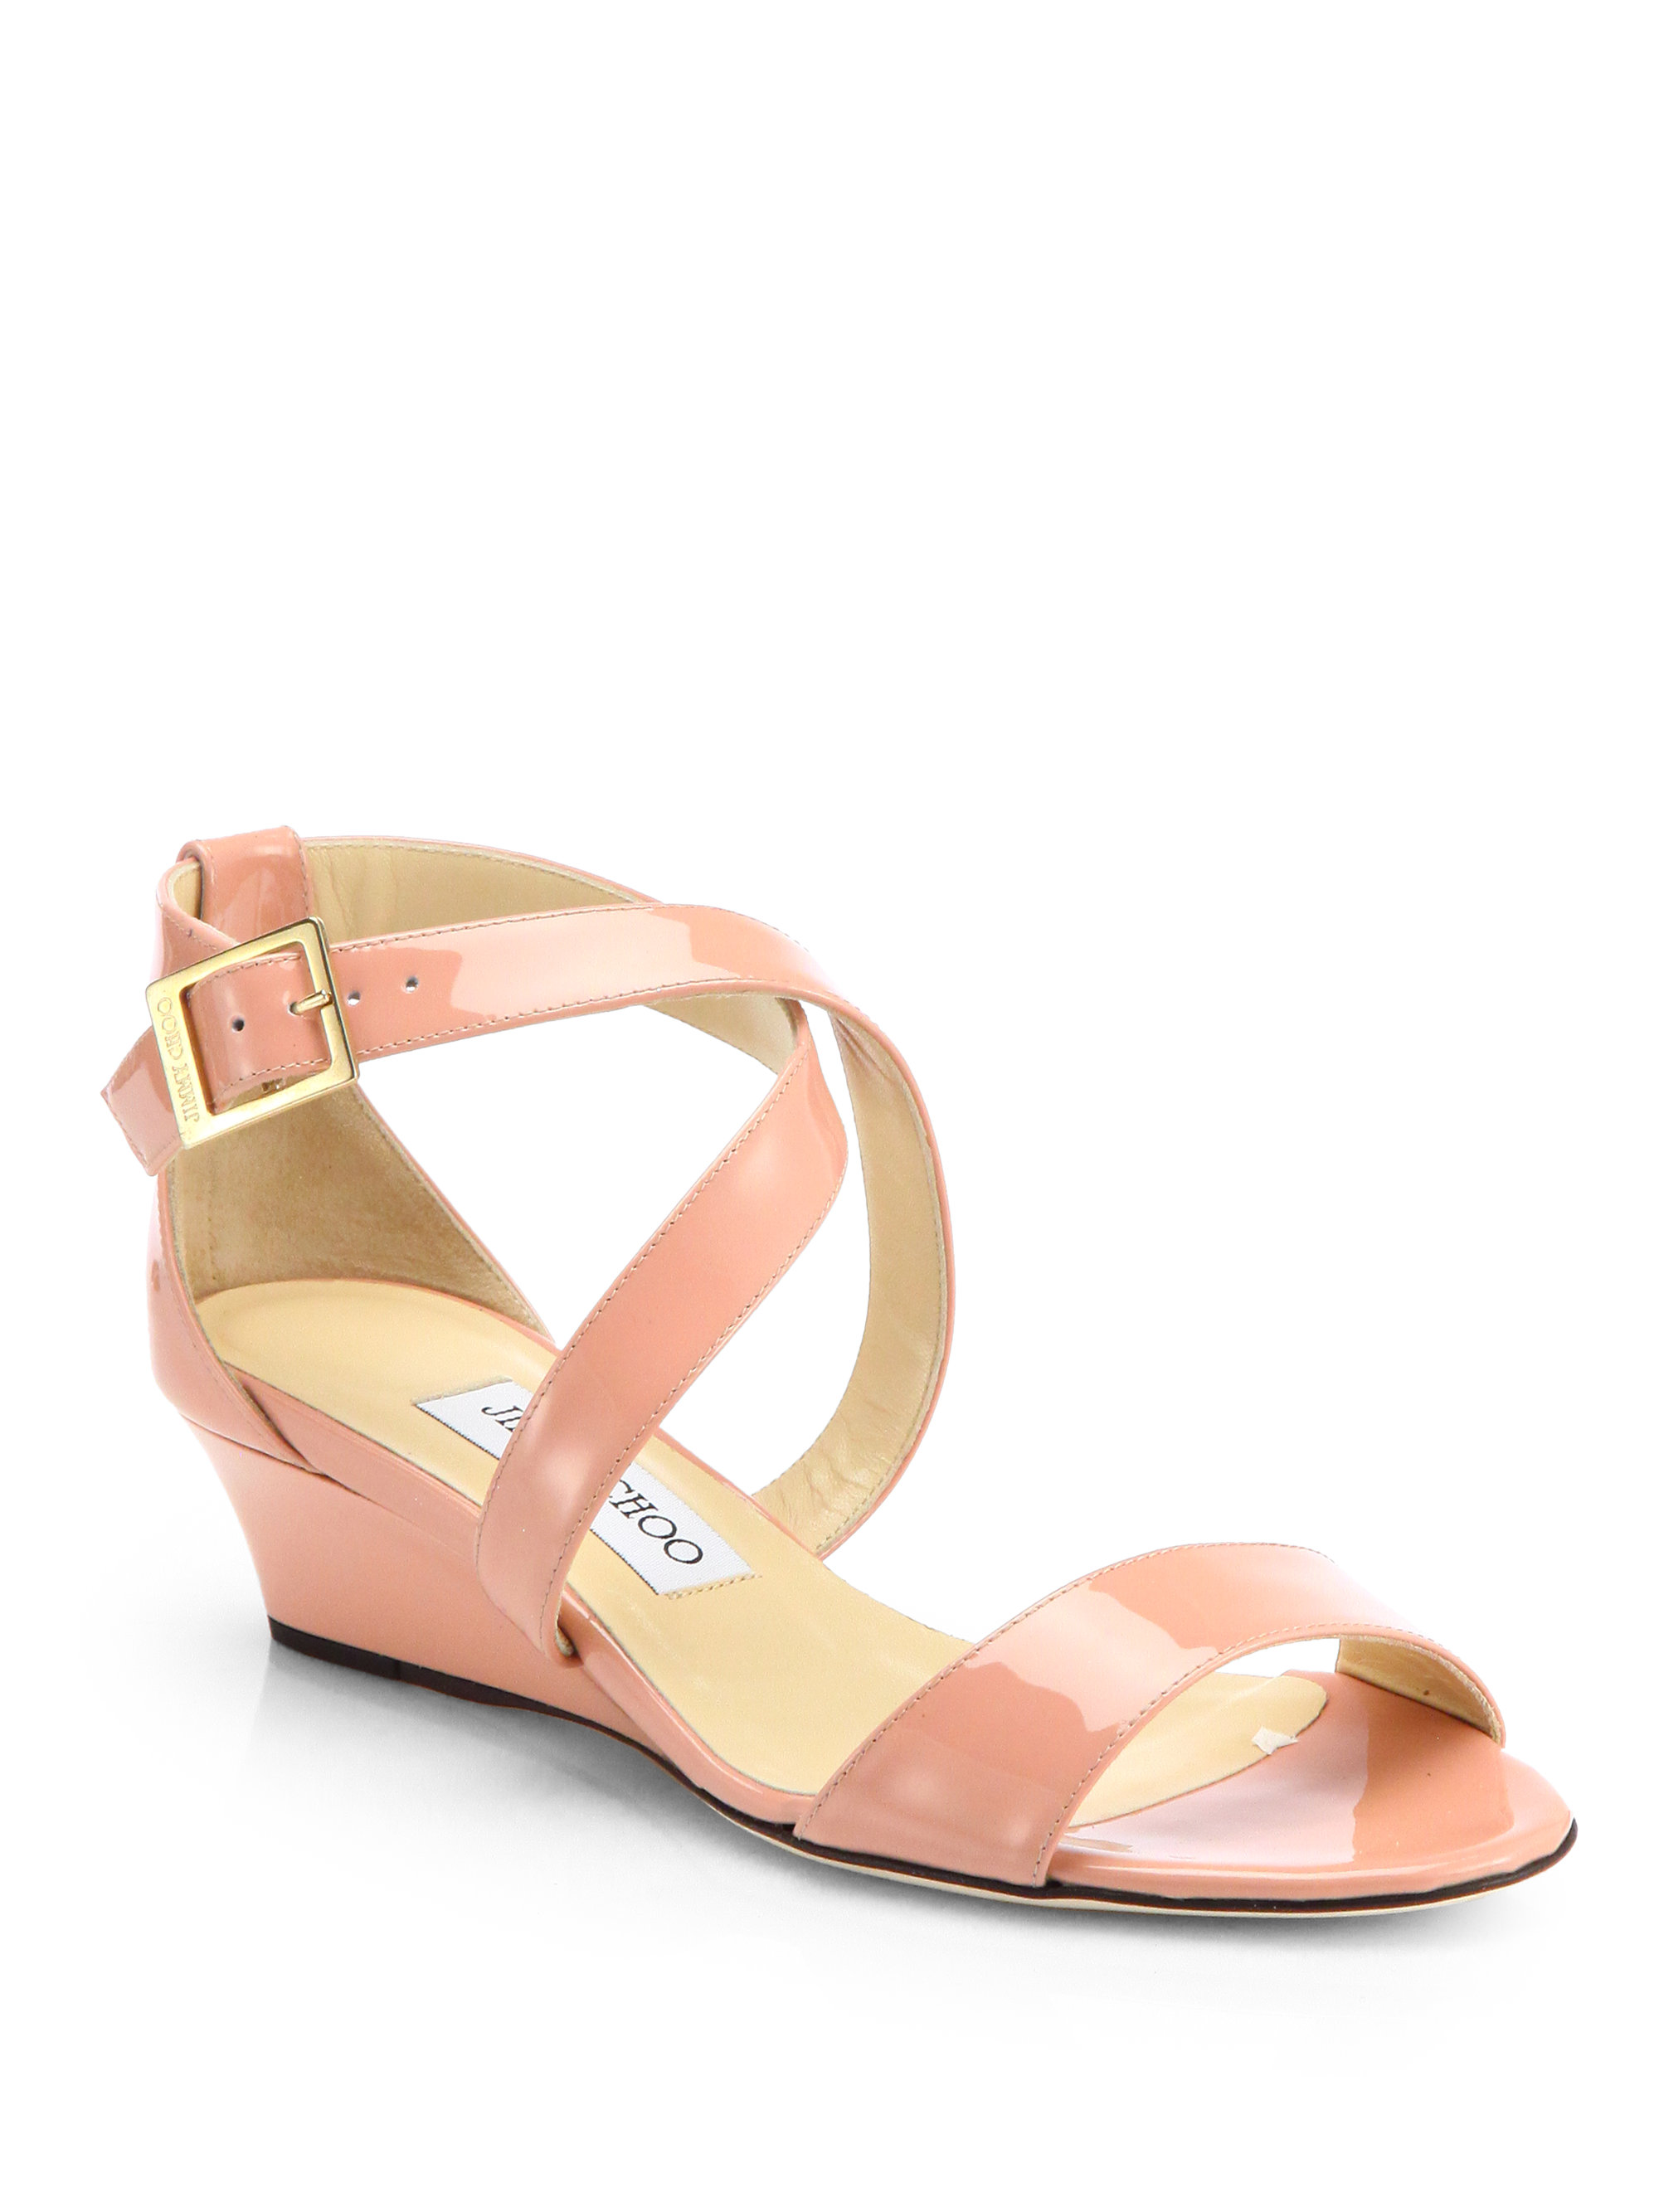 Jimmy choo Platform sandals patent leather